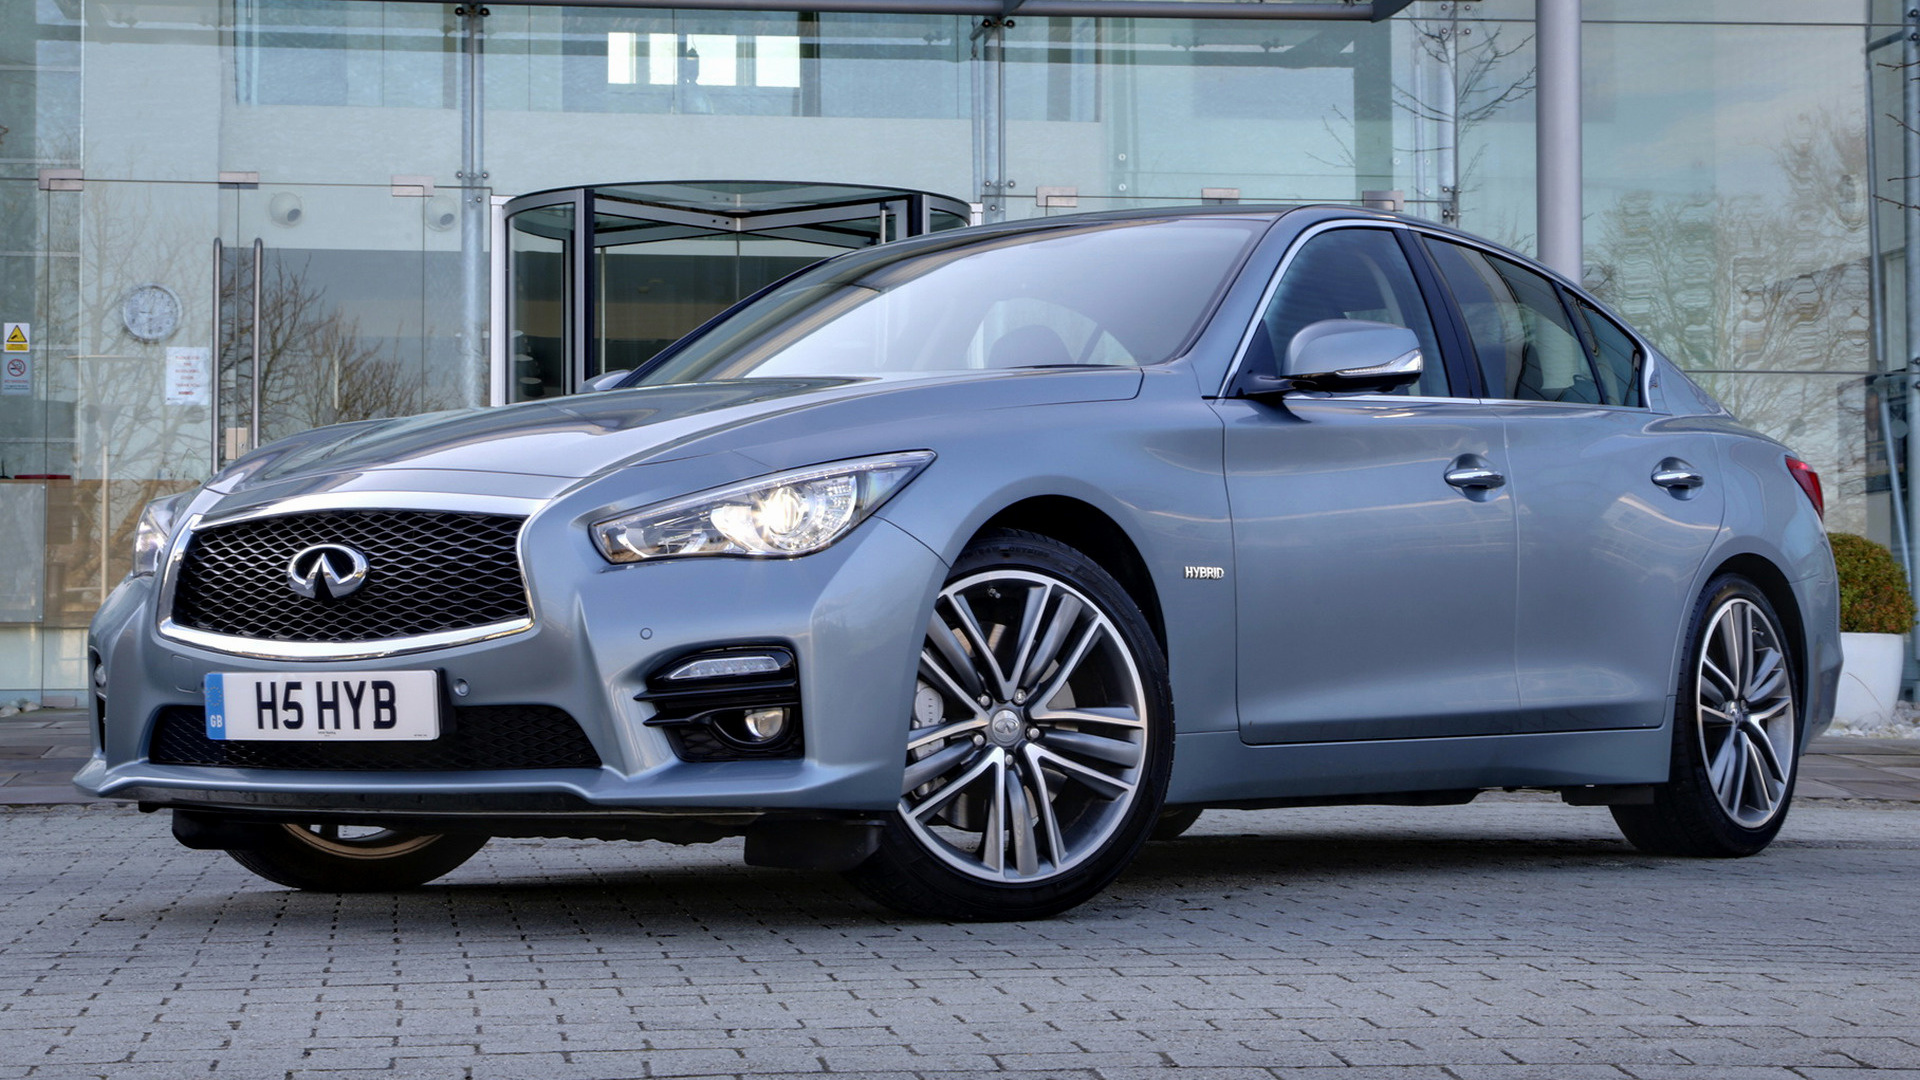 infiniti q50 sport hybrid 2014 uk wallpapers and hd images car pixel. Black Bedroom Furniture Sets. Home Design Ideas